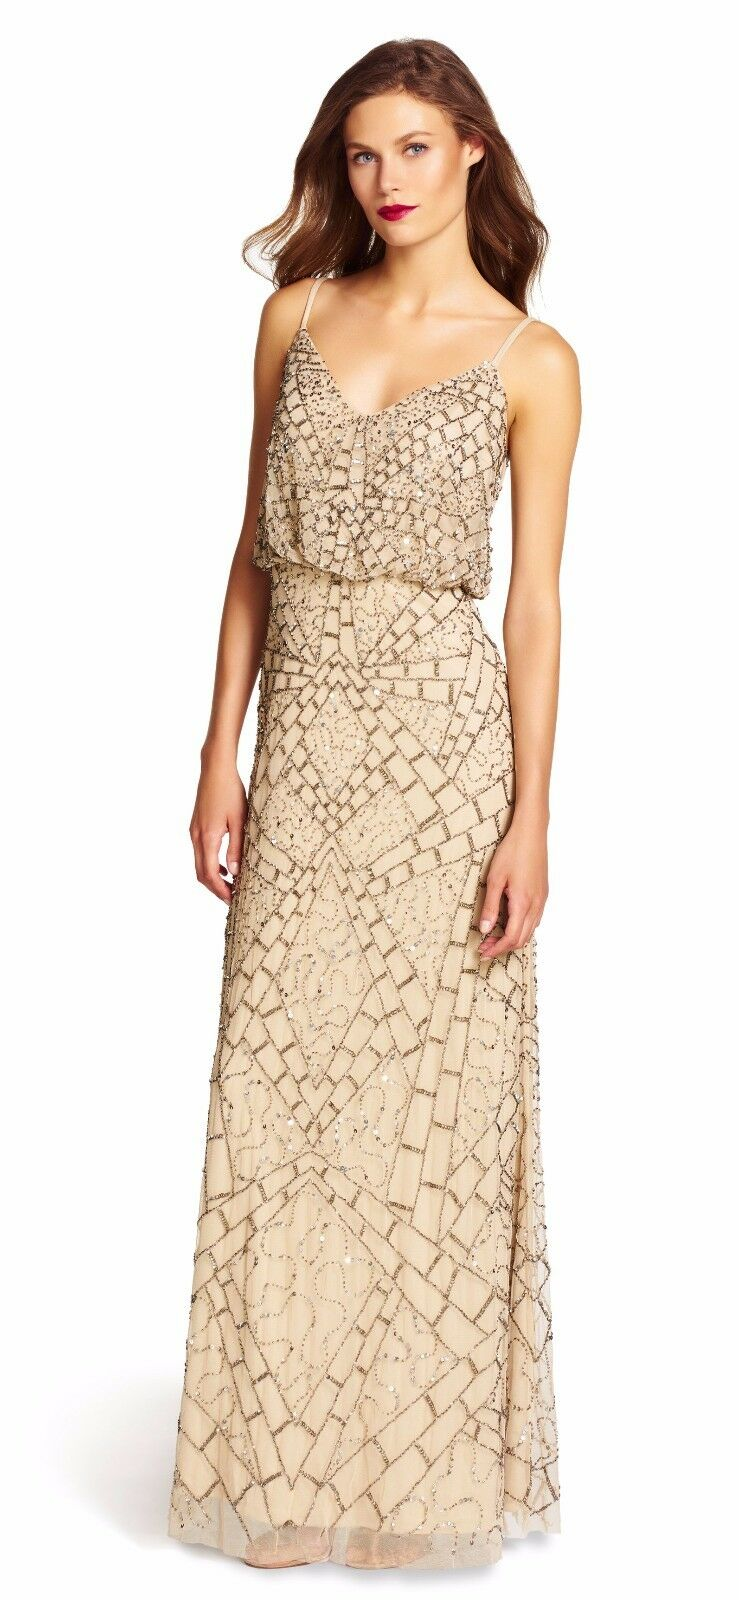 Adrianna Papell Nude Beige Sleeveless Beaded Blouson Gown - NWT Size 14